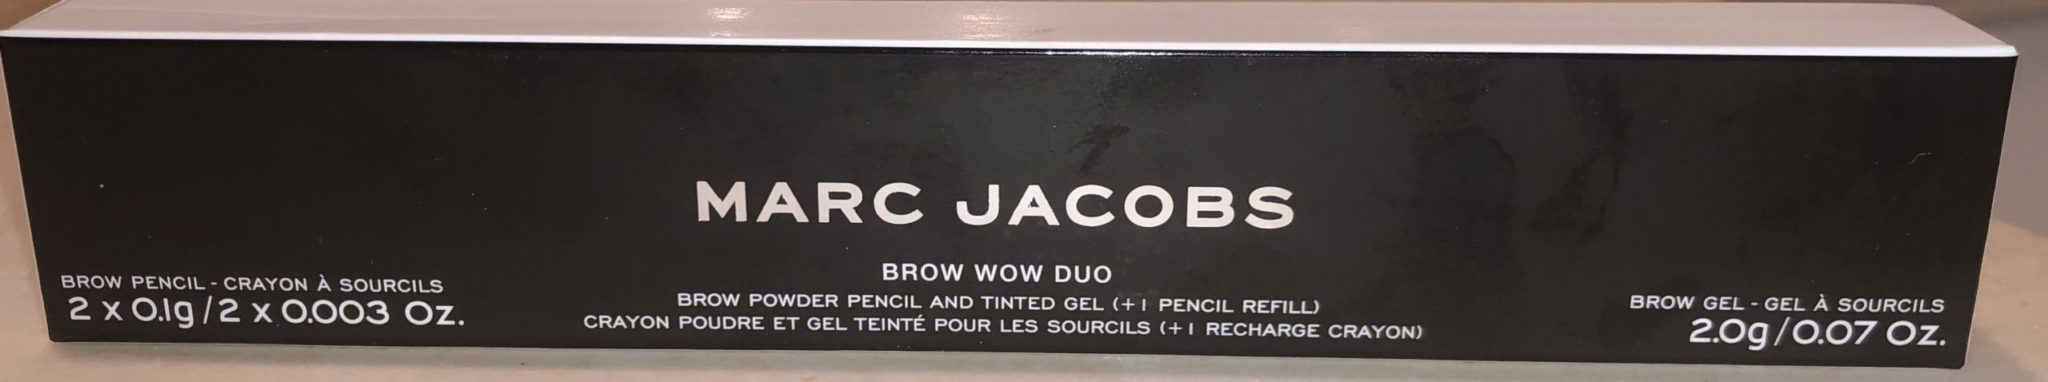 MARC JACOBS BROW WOW DUO PACKAGING BOX